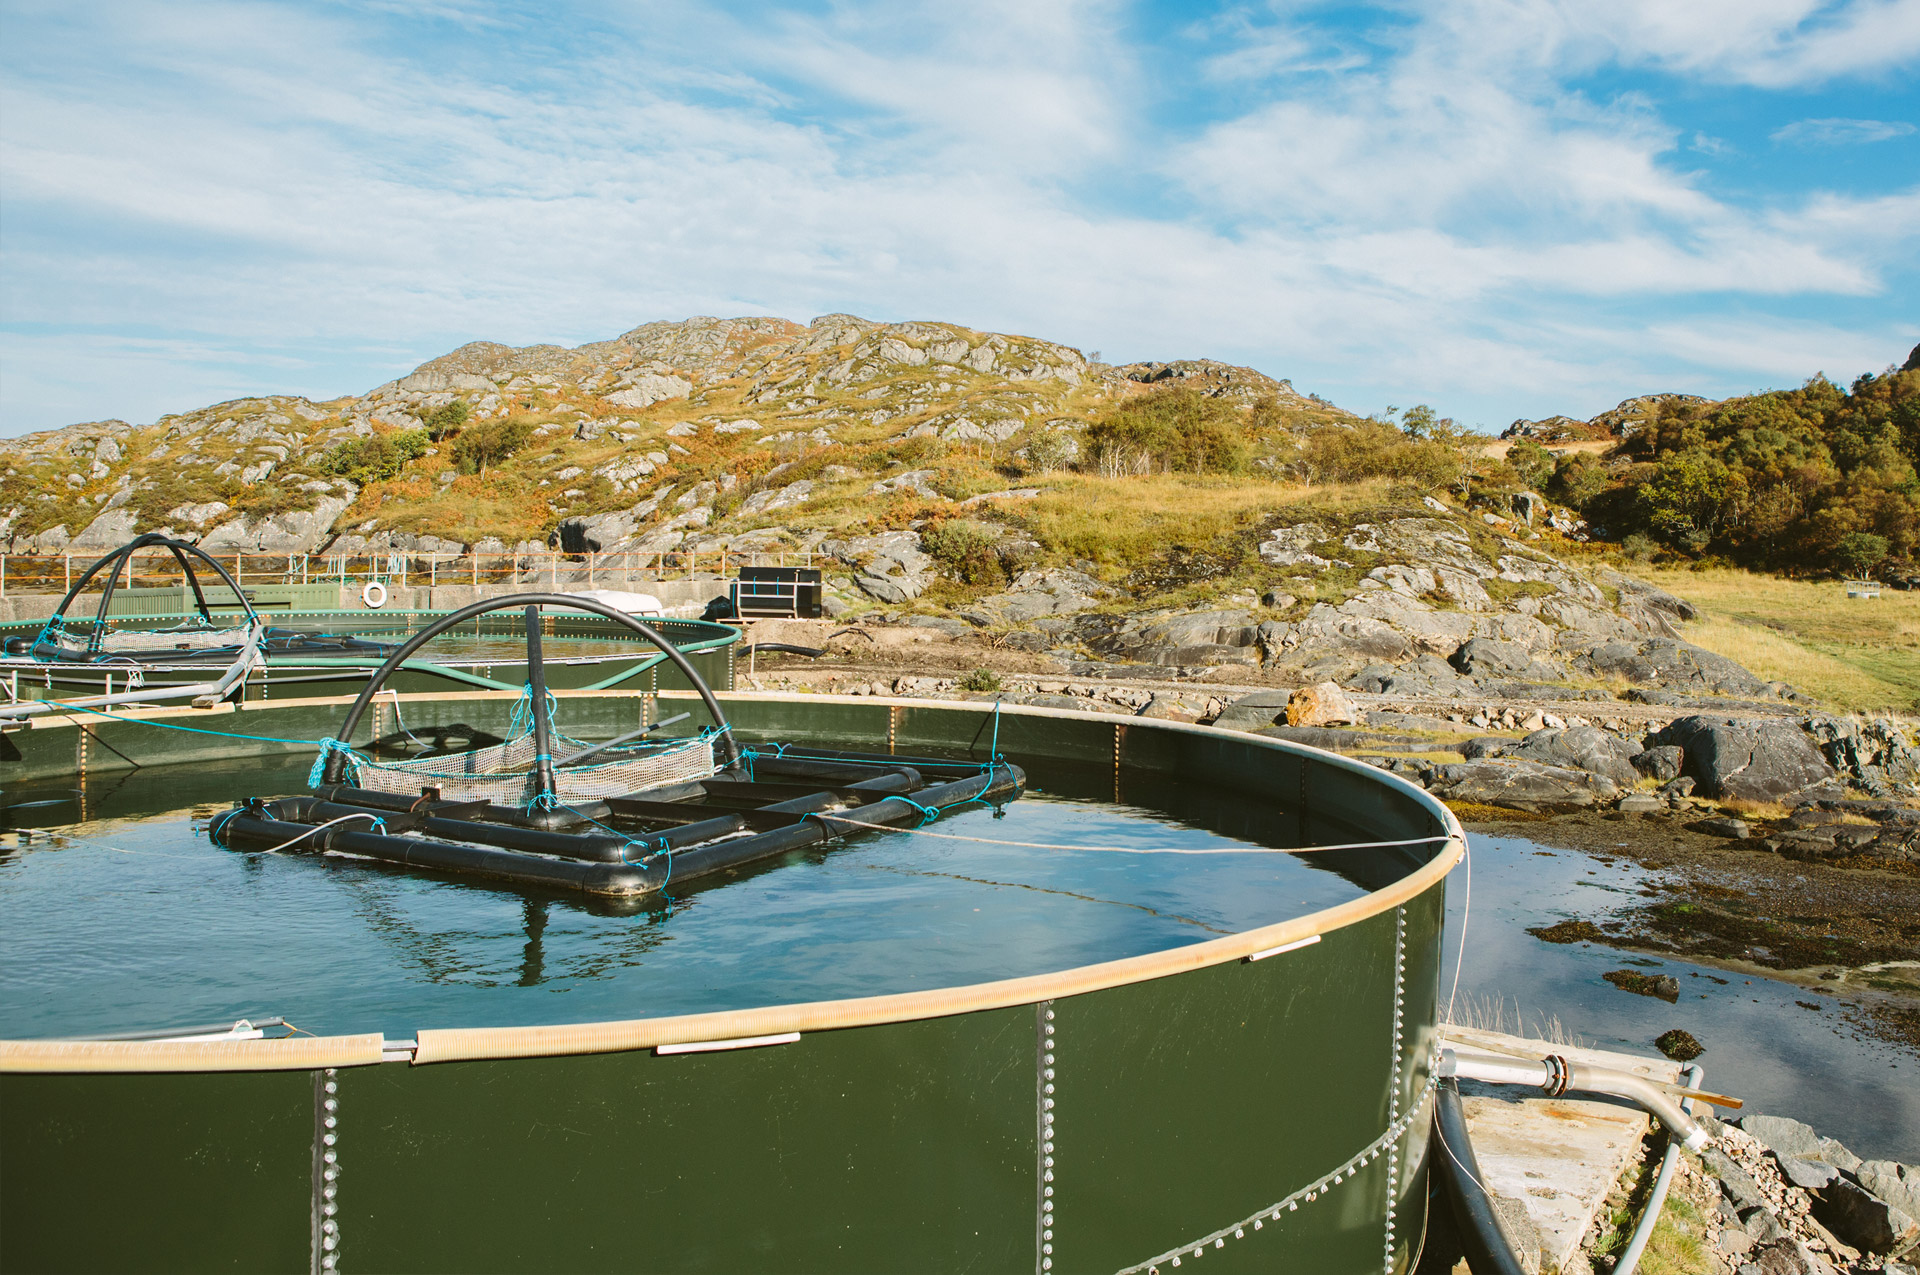 Ensuring Good Health & Biosecurity on Fish Farms